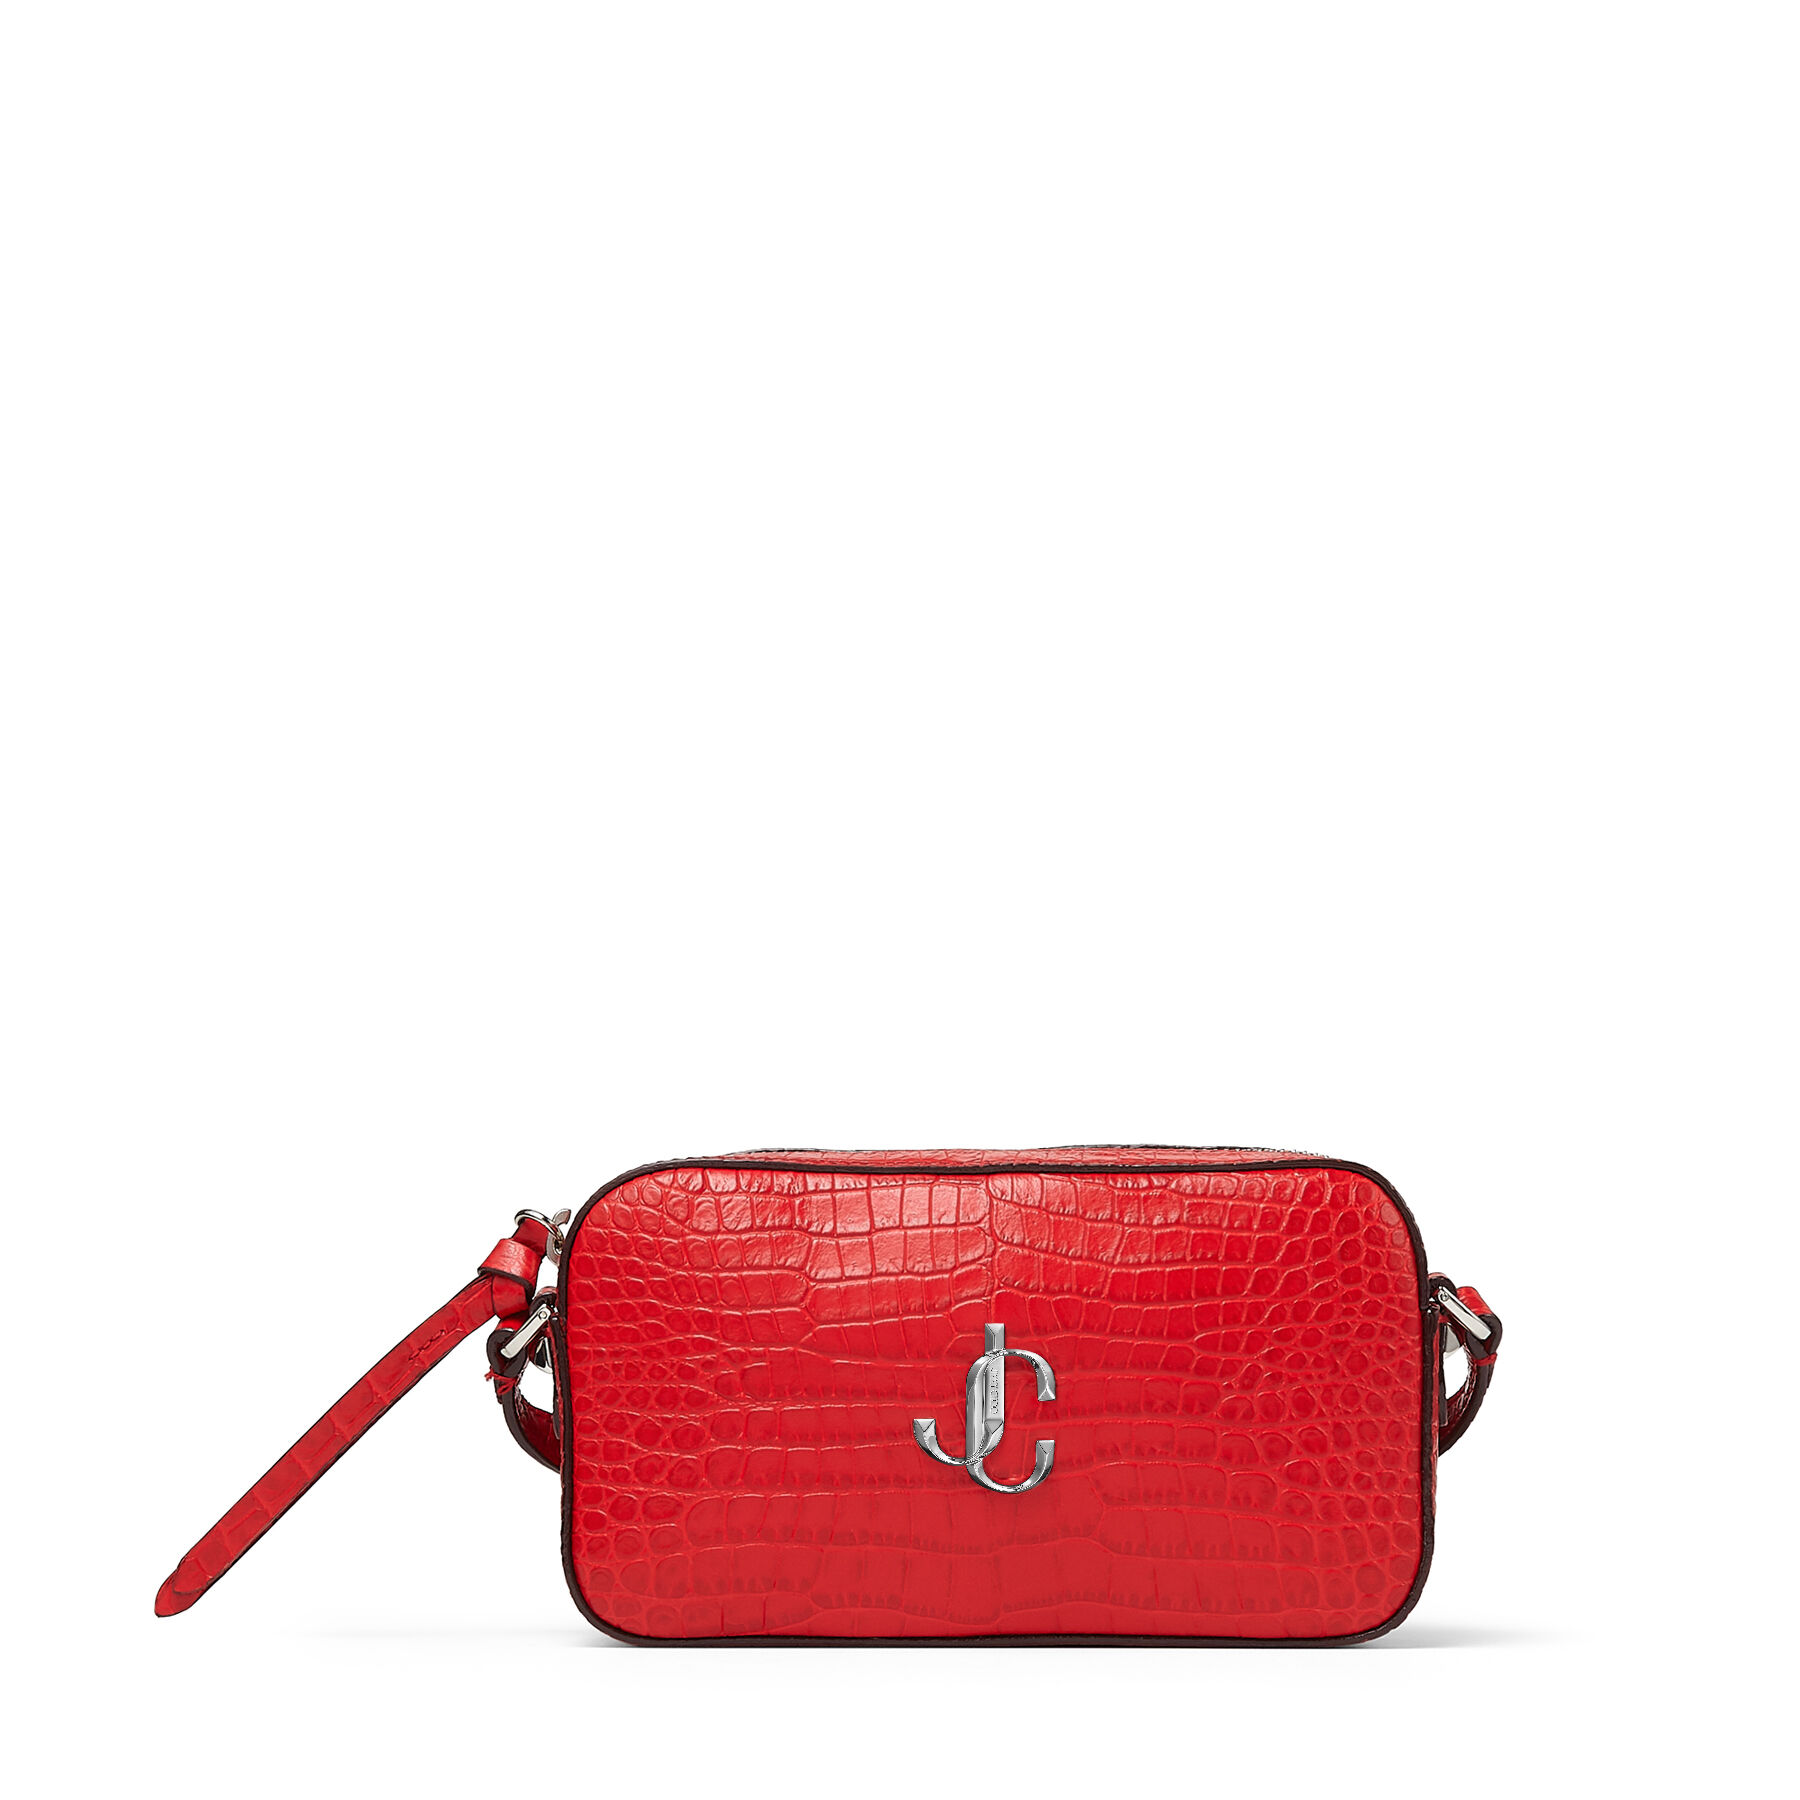 HALE - Royal Red Croc-Embossed Leather Cross-Body Bag with JC Emblem